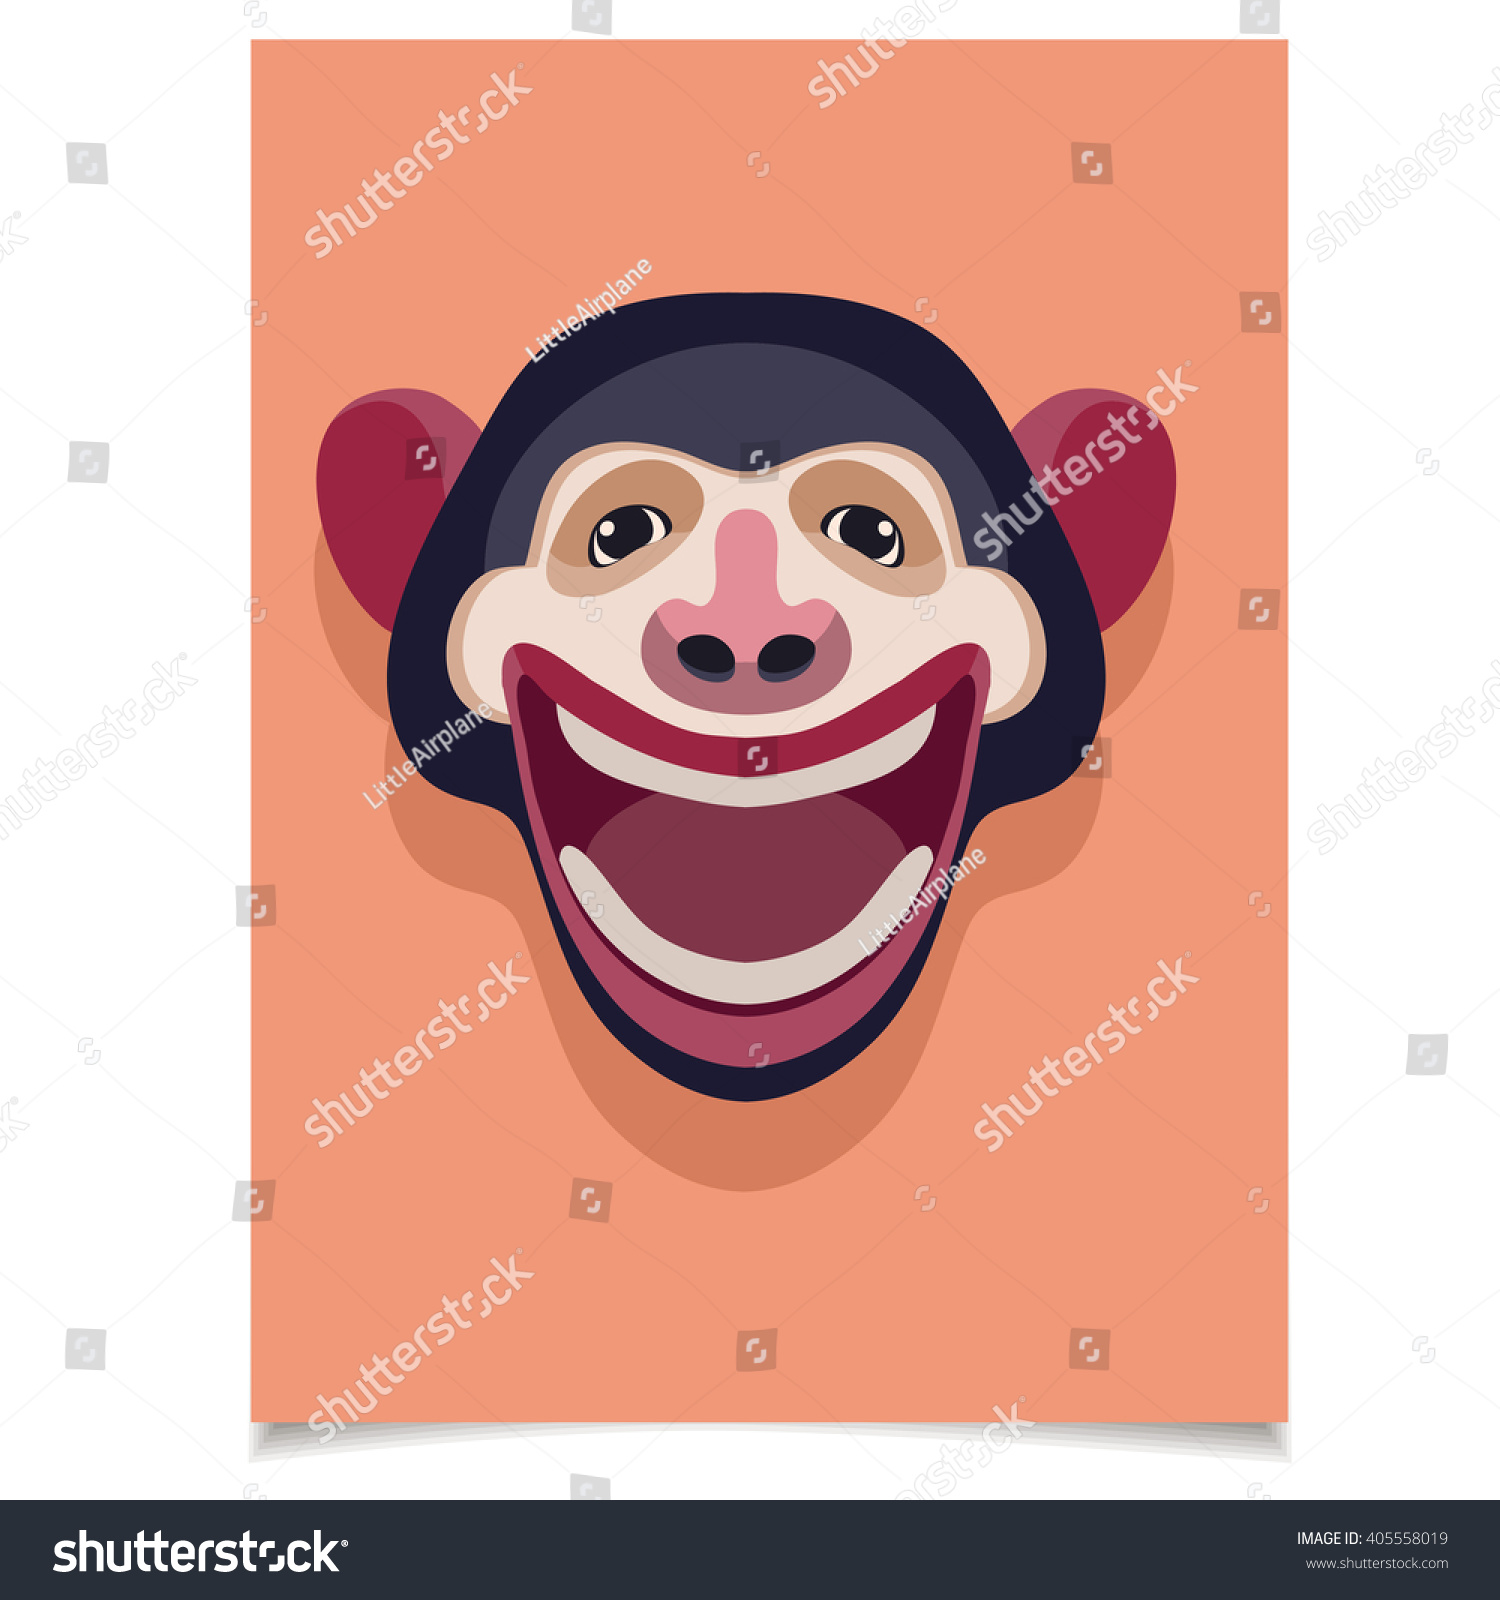 Template Set With Smiling Monkey Head For Placards Brochures